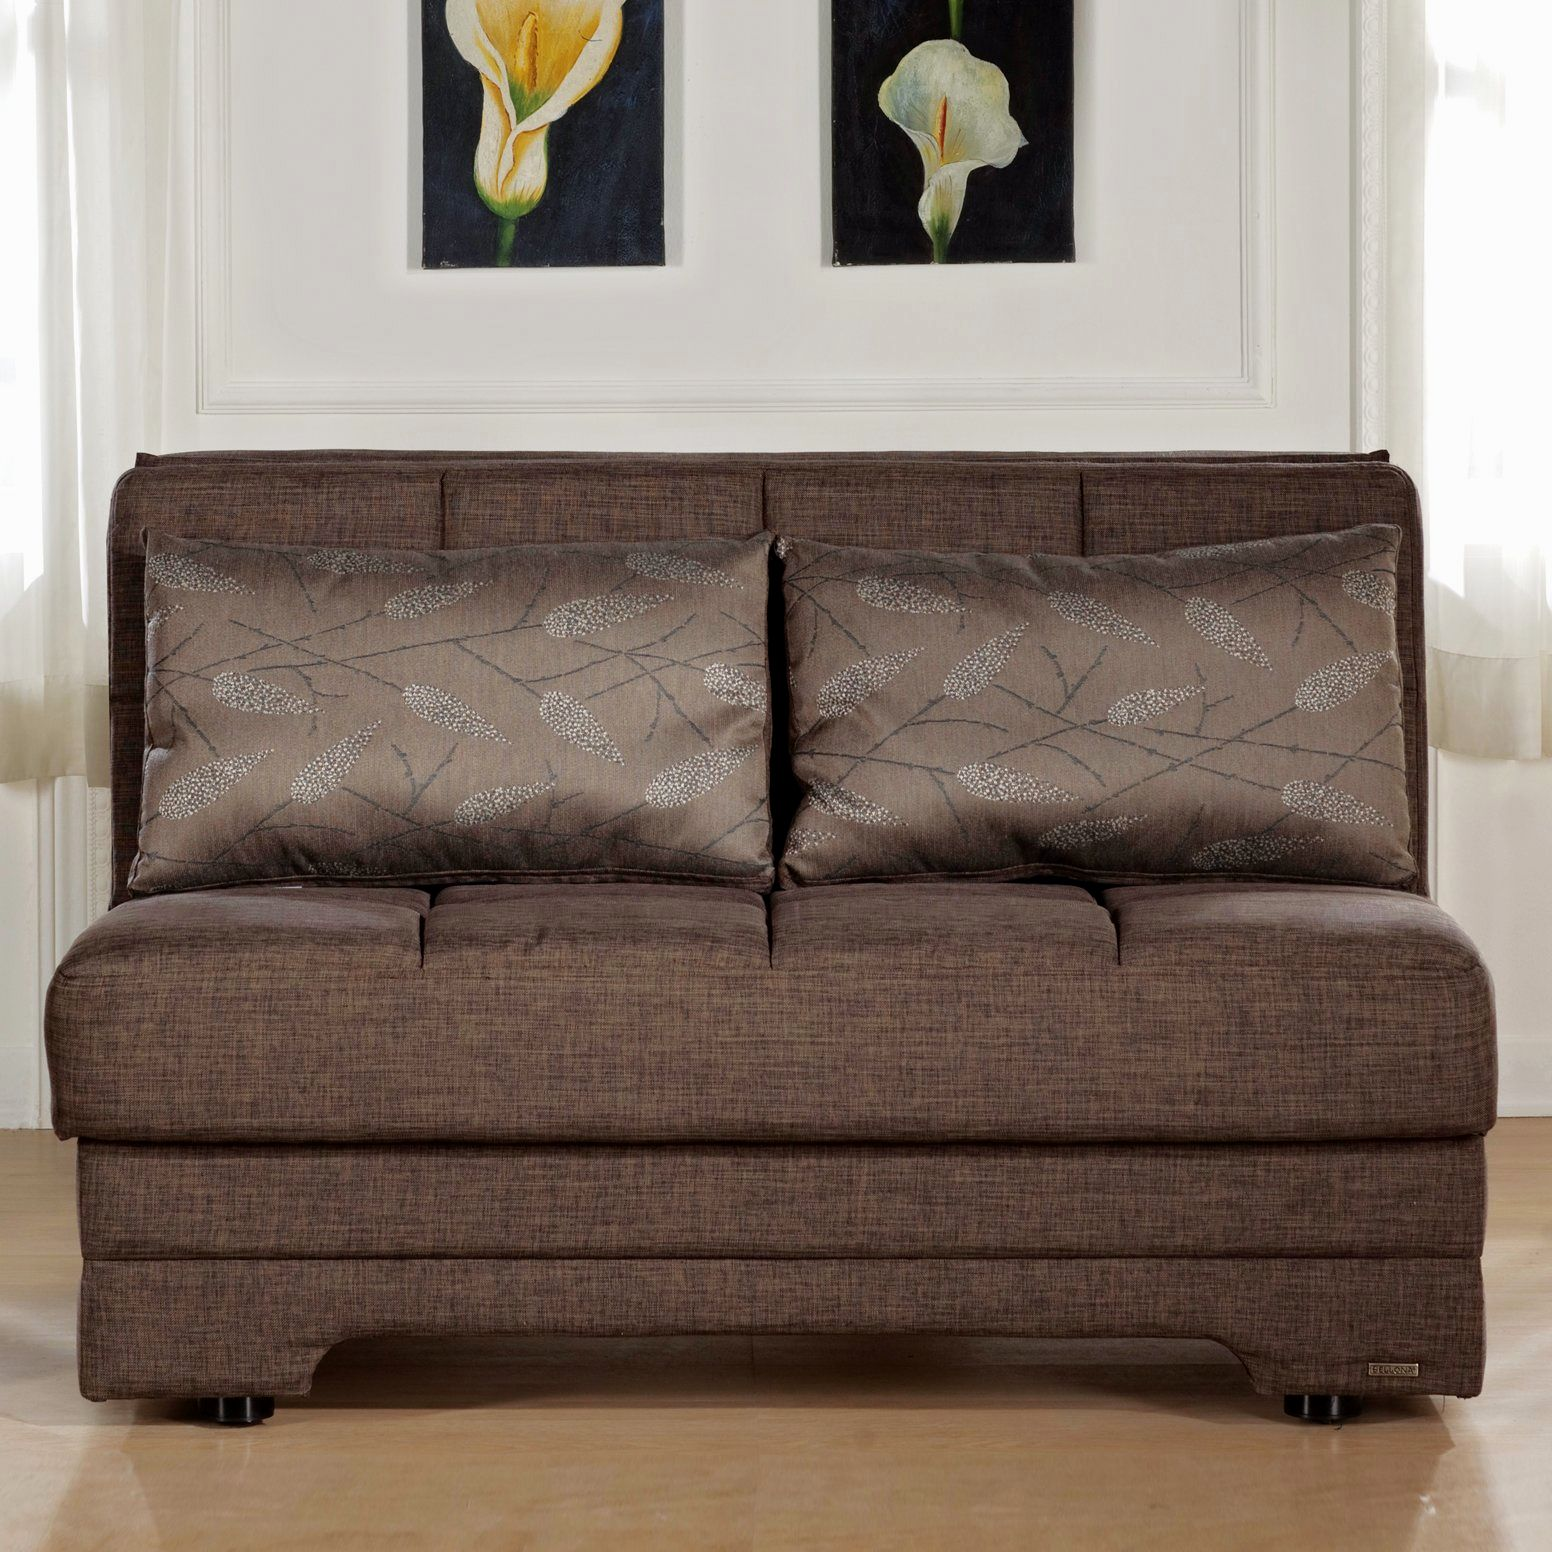 contemporary pull out sofa bed décor-Excellent Pull Out sofa Bed Decoration